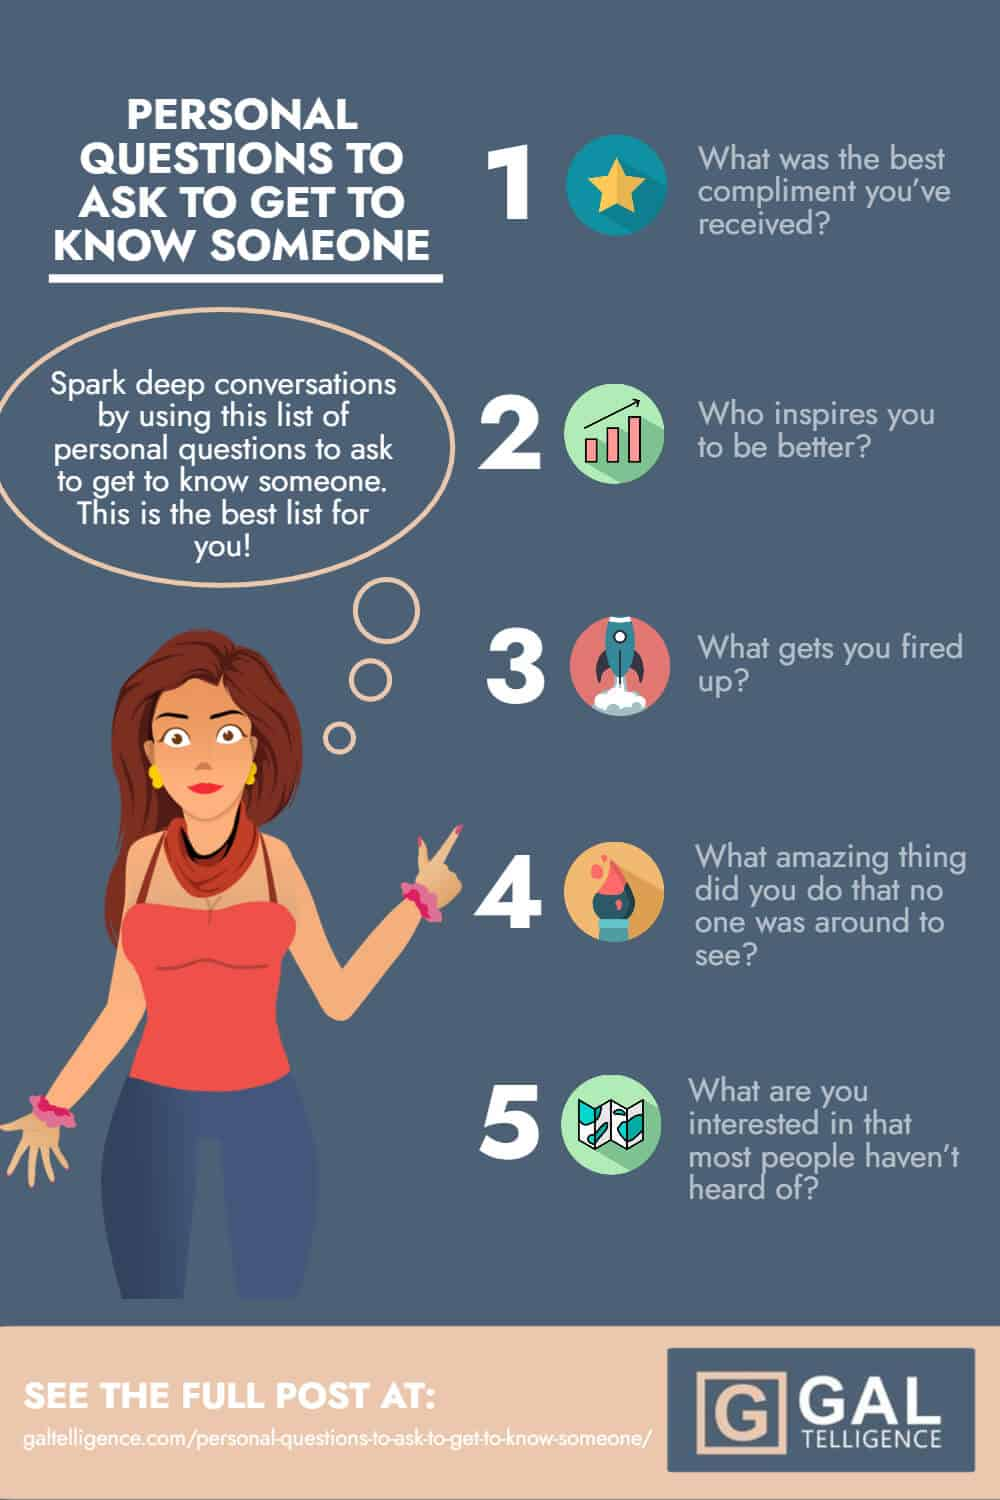 Personal Questions To Ask To Get To Know Someone - infographic